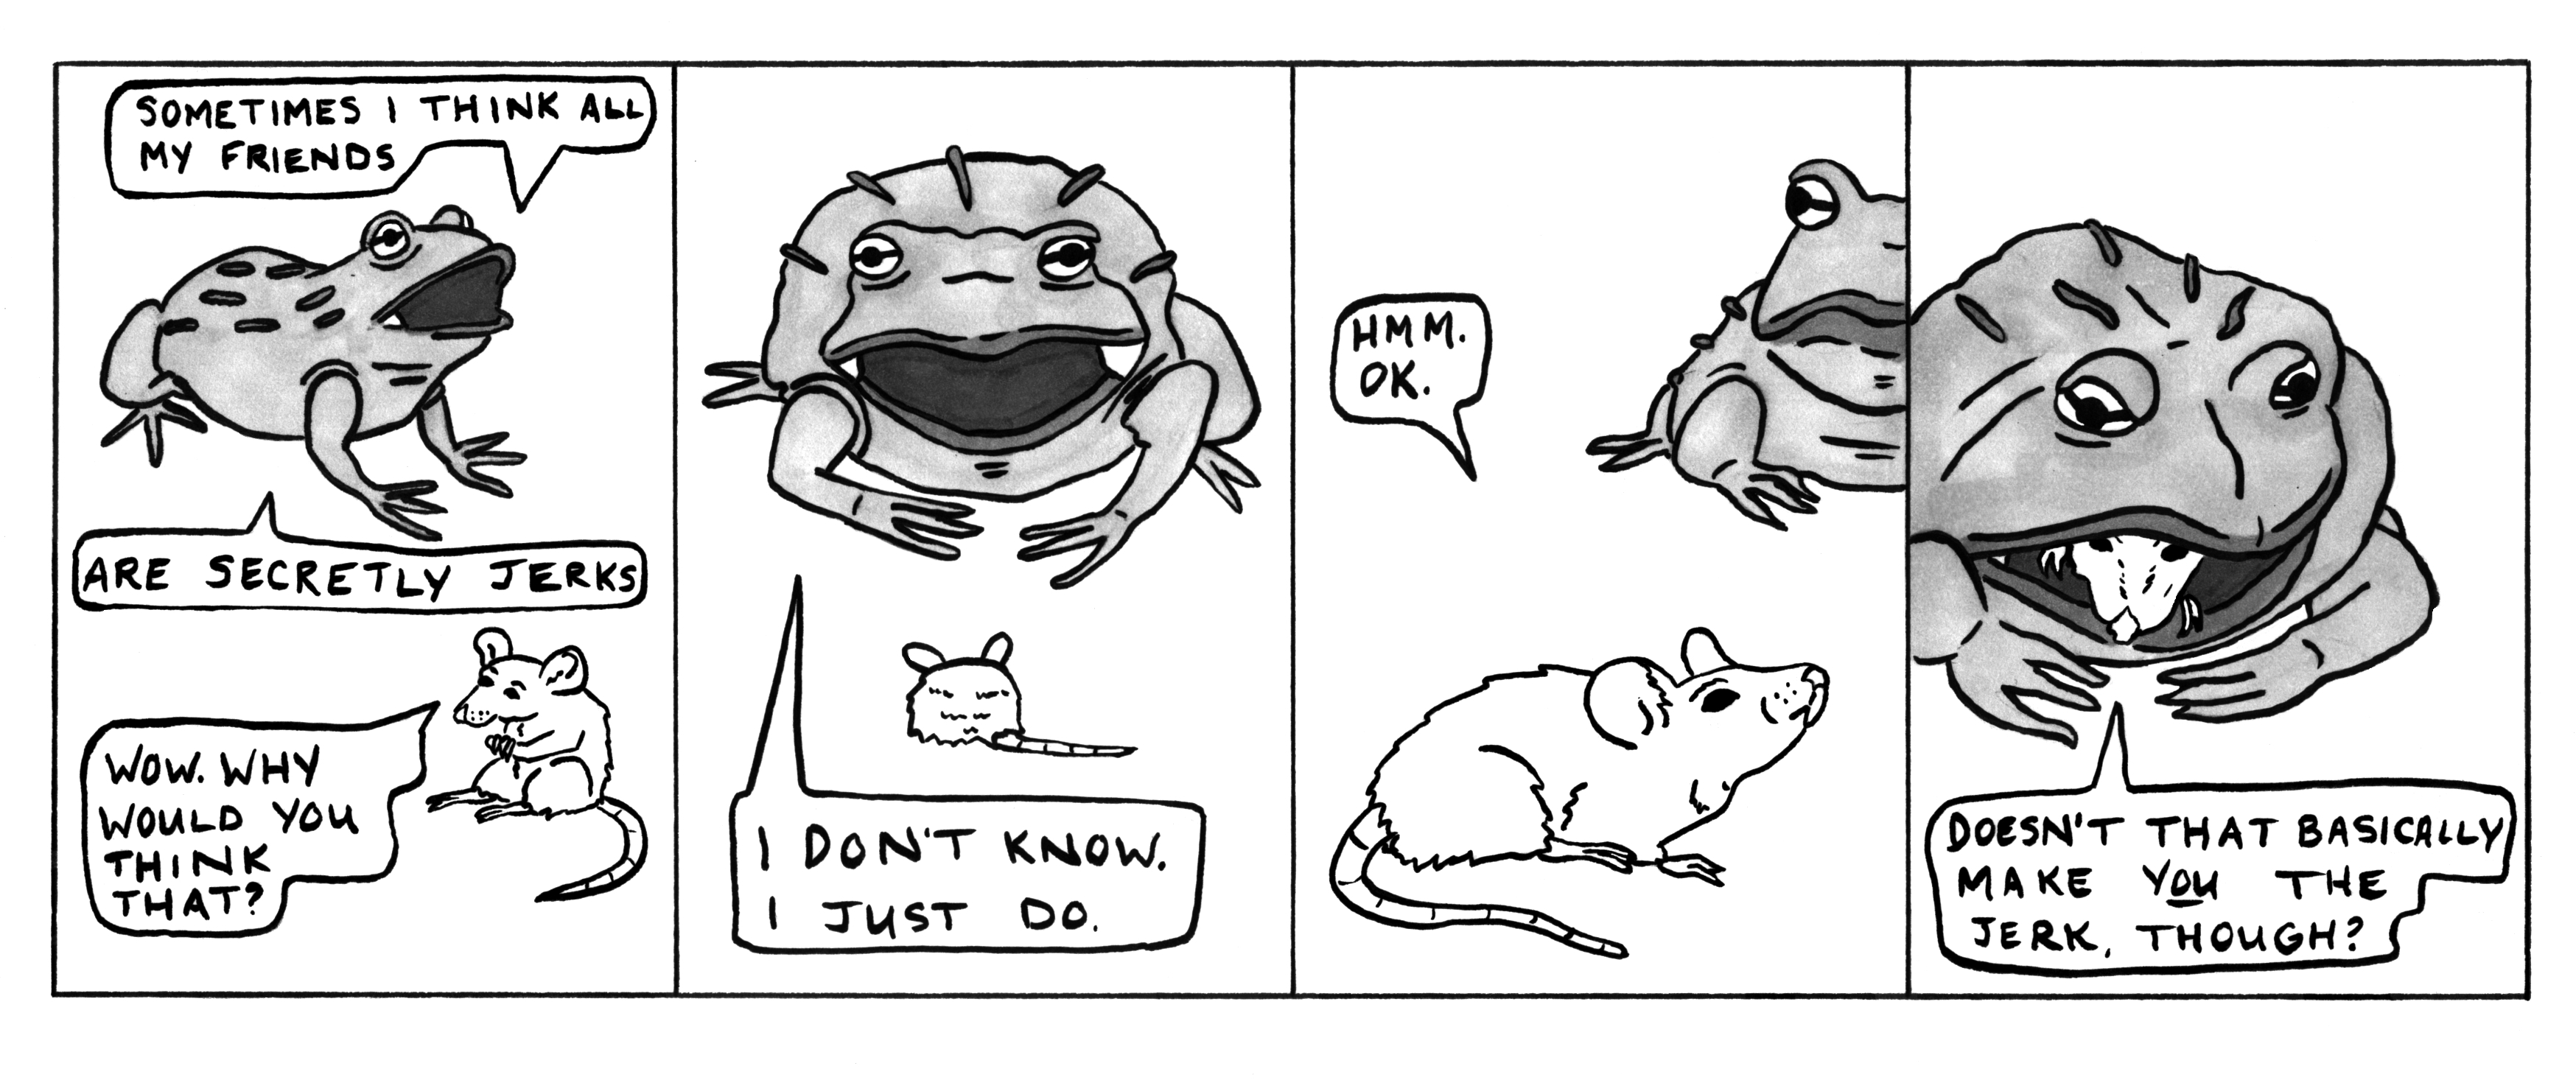 Probably a good time to emphasize the author/comic frog divide